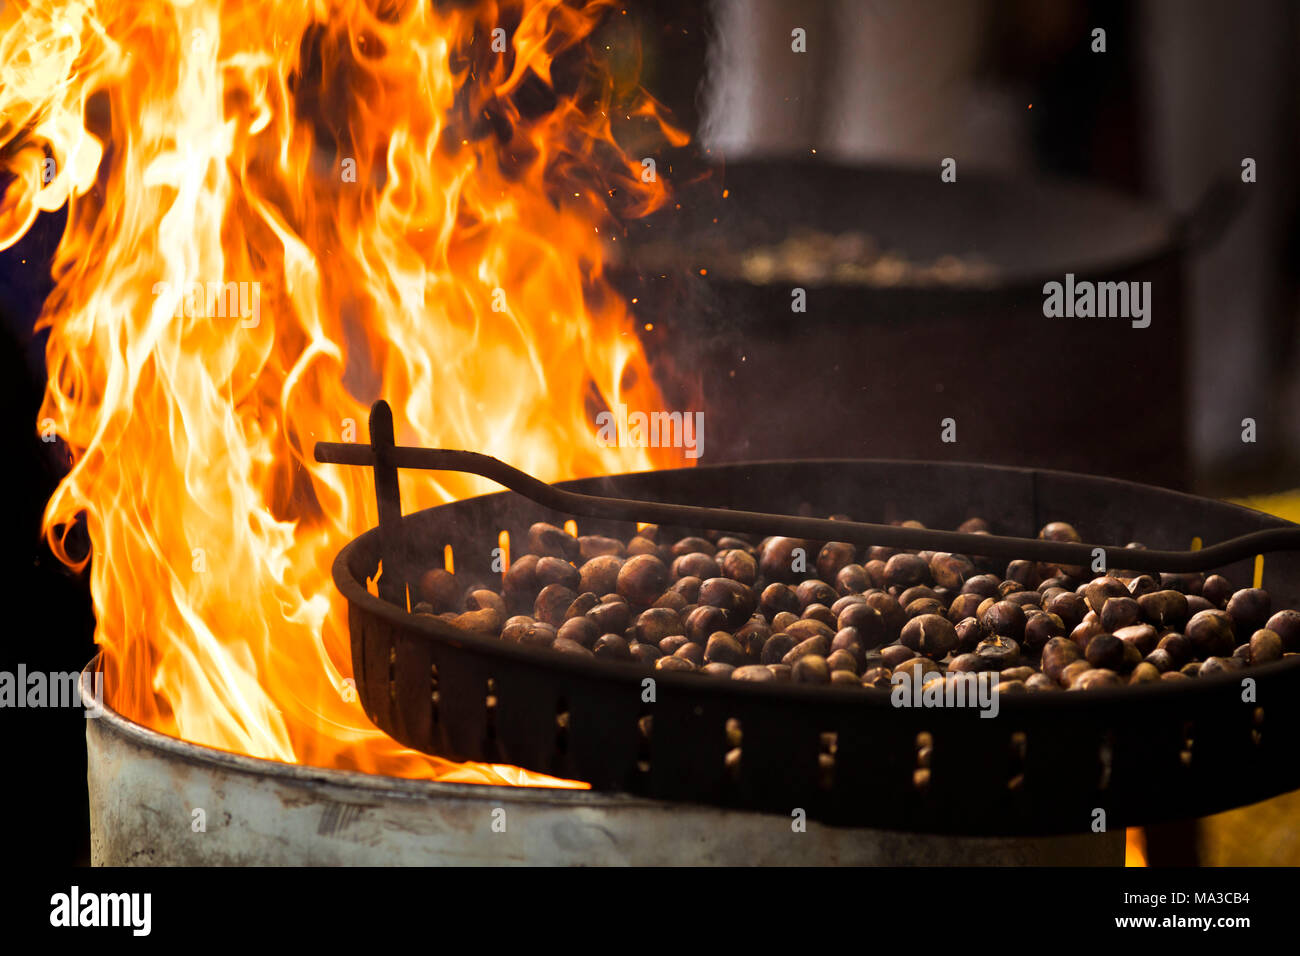 a suggestive snapshot of a cooking pan full of chestnuts roasting by the fire, Bolzano province, South Tyrol, Trentino Alto Adige, Italy - Stock Image